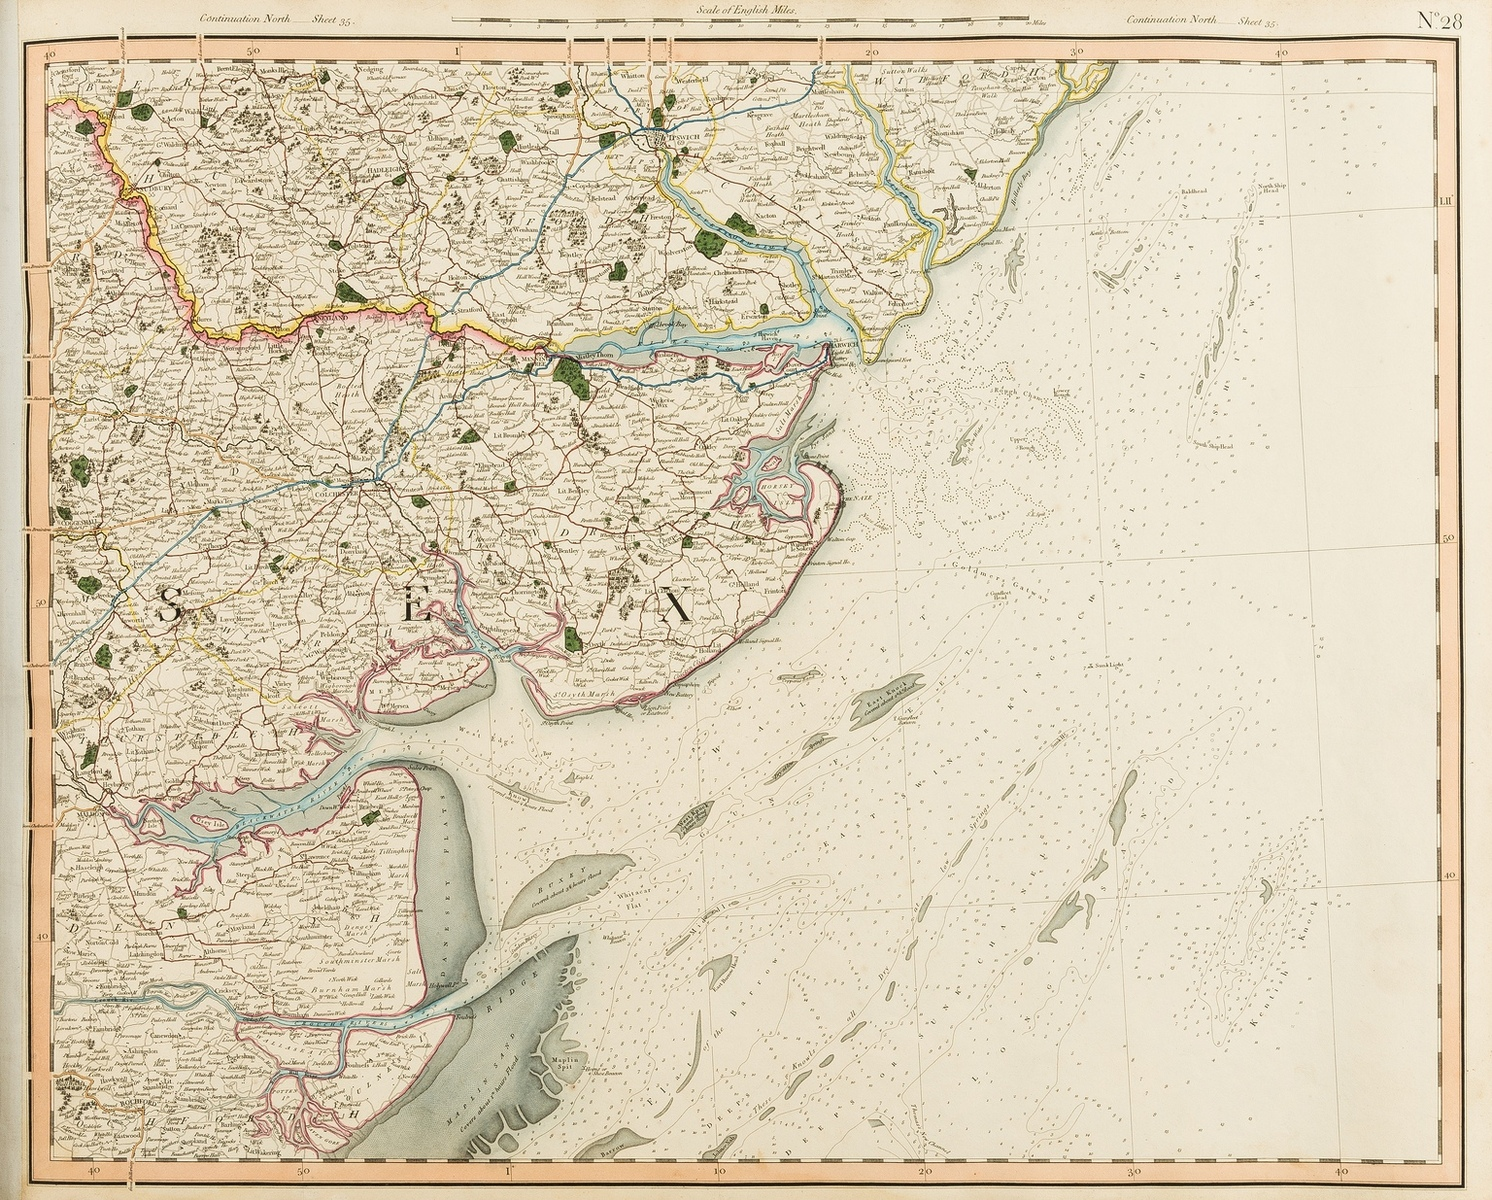 Britain.- Cary (John) Cary's Improved Map of England and Wales, hand-coloured maps, 1832.